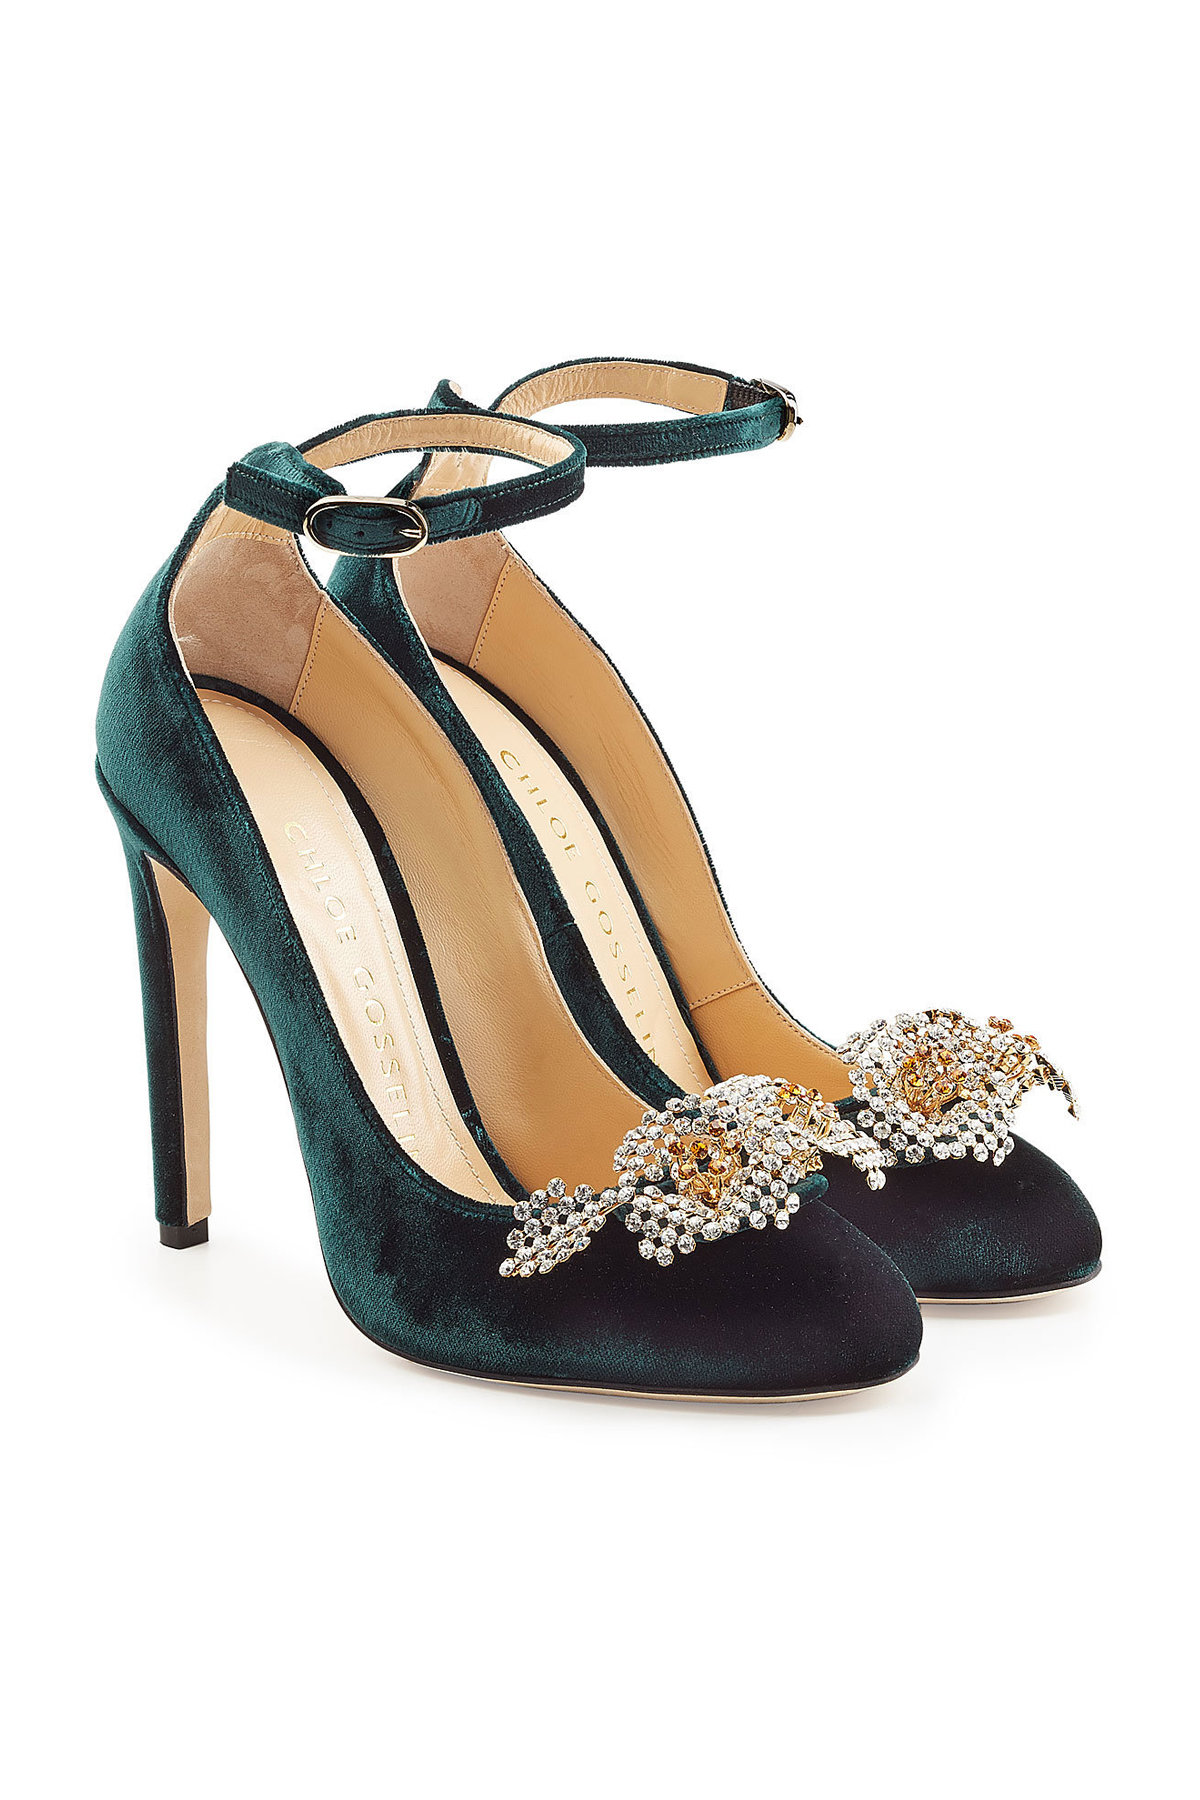 Rupert Sanderson Solita Pumps with Velvet Gr. EU 37